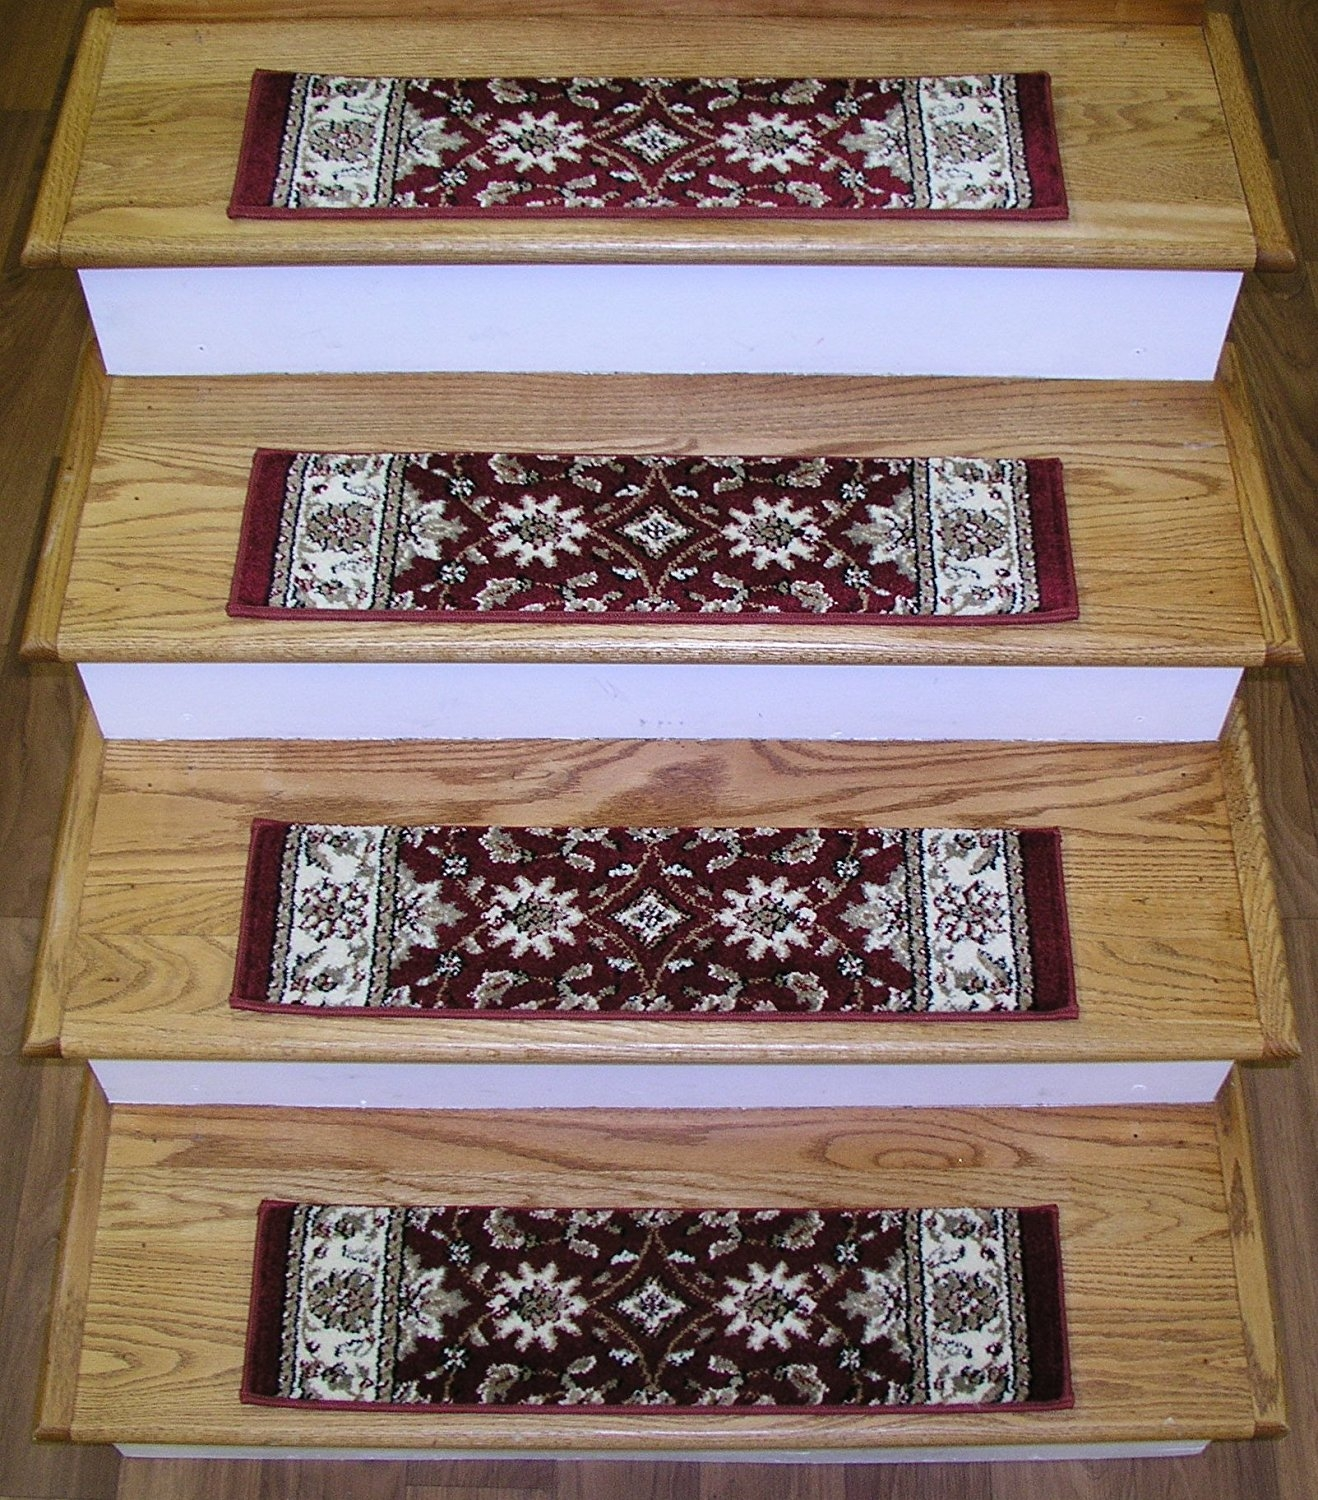 Amazon 891004 Rug Depot Premium Carpet Stair Treads Set Inside Carpet Stair Treads And Rugs 9× (View 10 of 20)